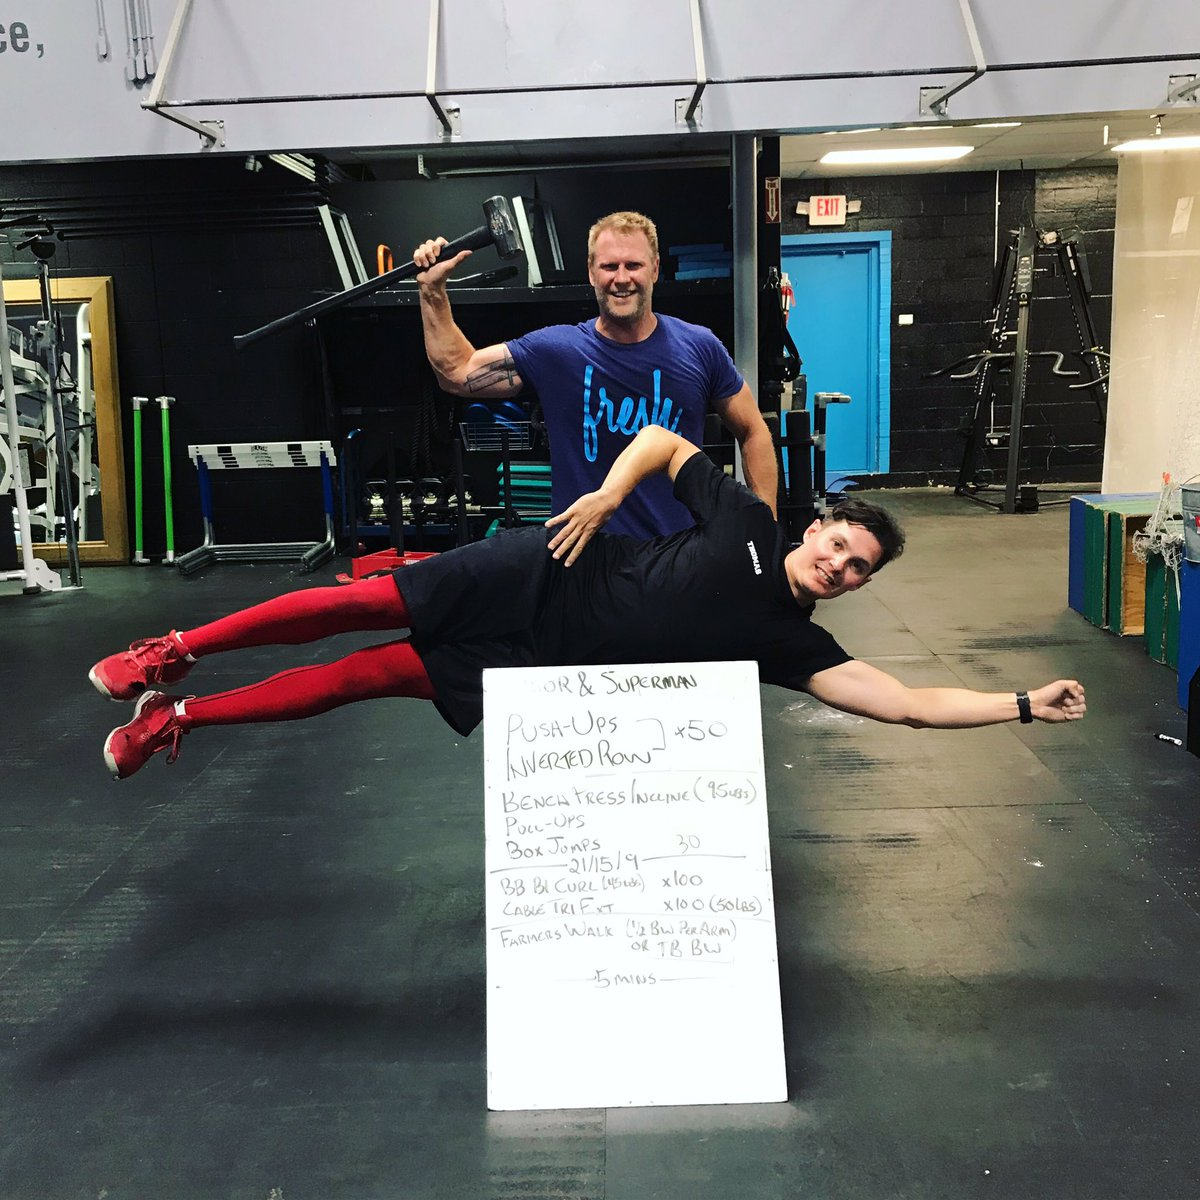 Just a typical superhero workout day for our client @crofty306 with @tommyguns585   #SummerTraining #Thor  #Superman #FunWorkout<br>http://pic.twitter.com/lKeYdf62l3